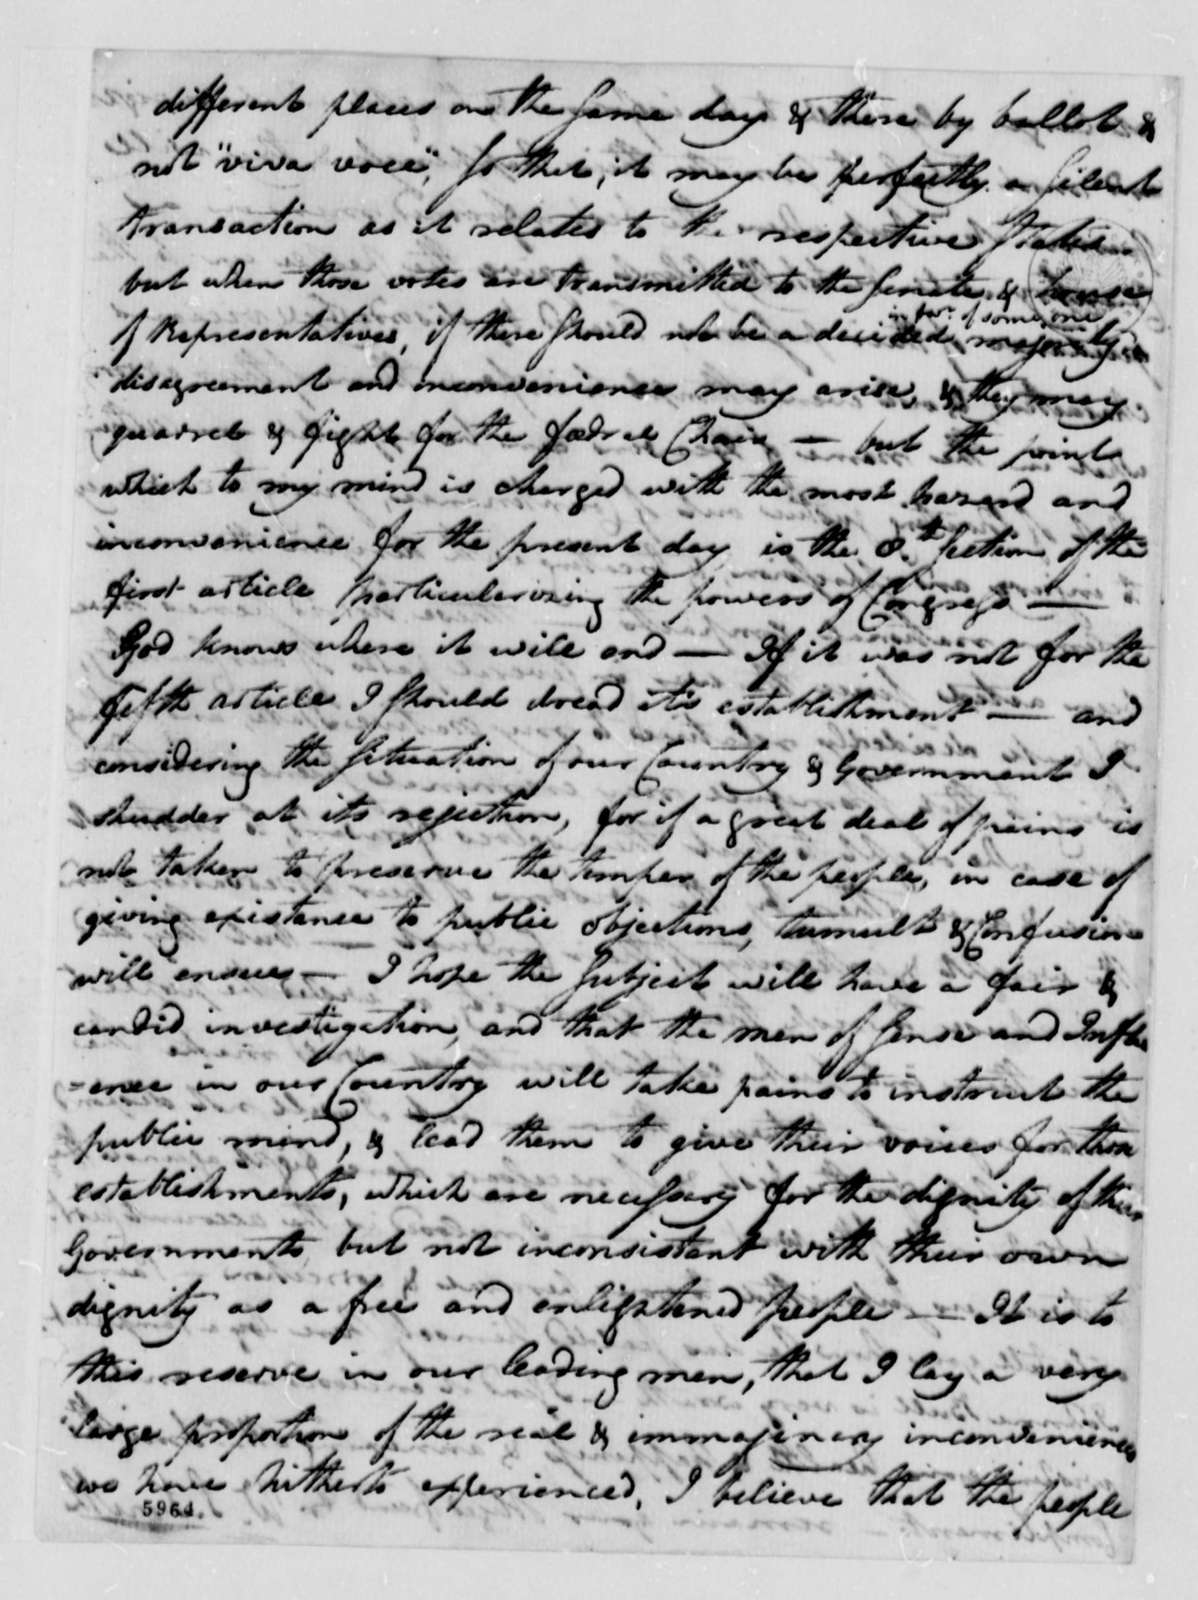 William S. Smith to Thomas Jefferson, December 3, 1787